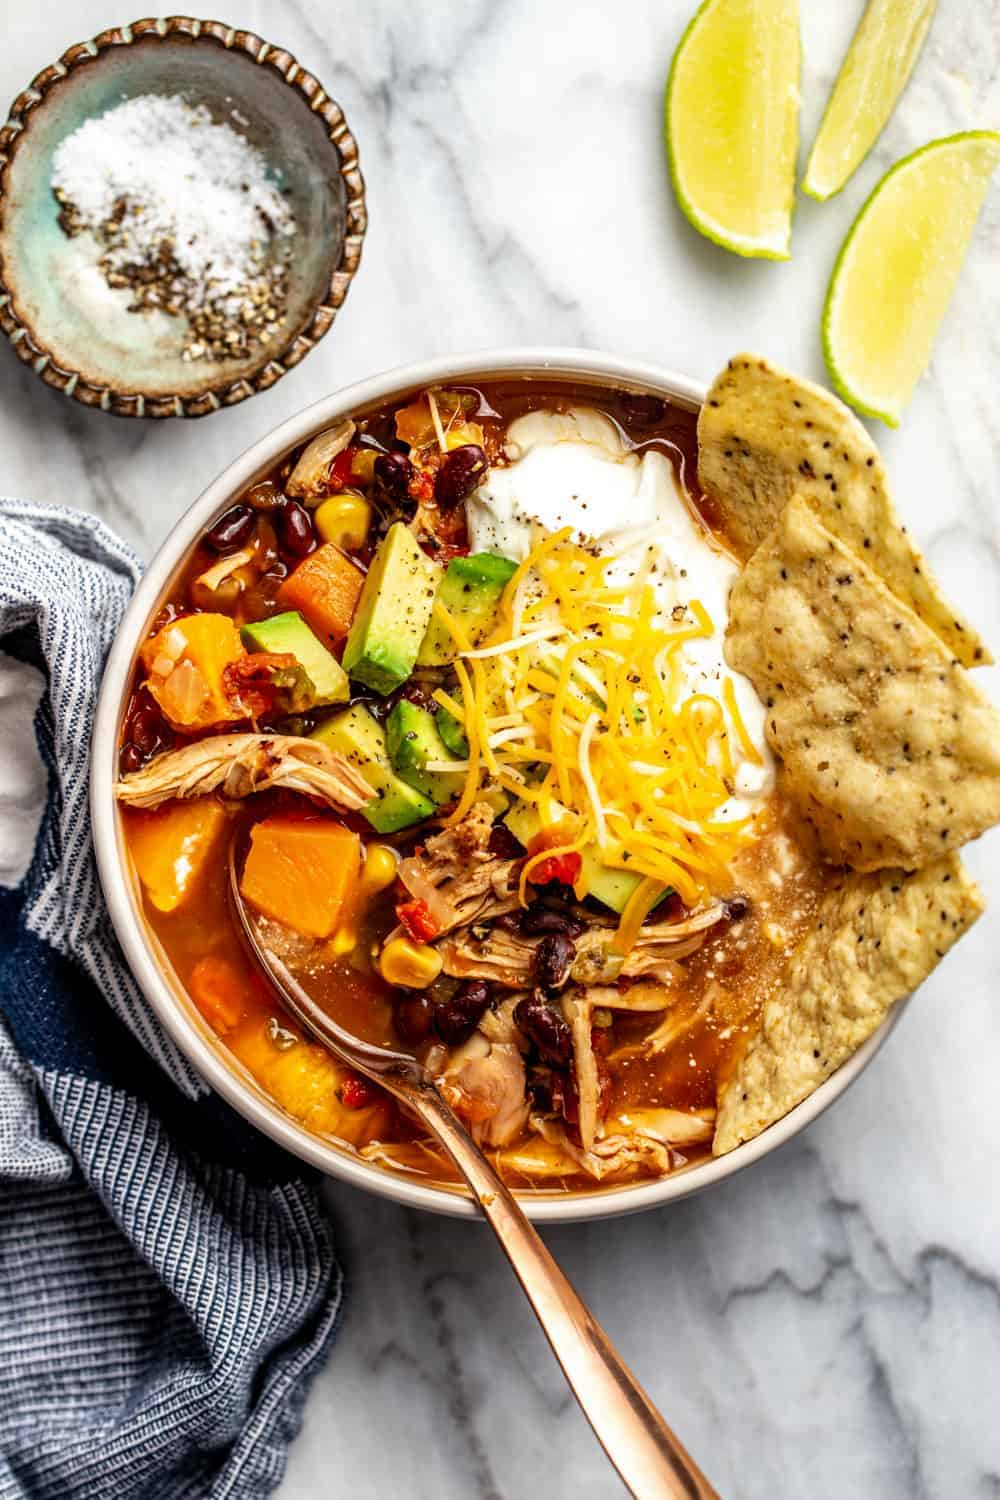 Bowl of tortilla soup made with rotisserie chicken. Garnished with tortilla chips, cheese and sour cream